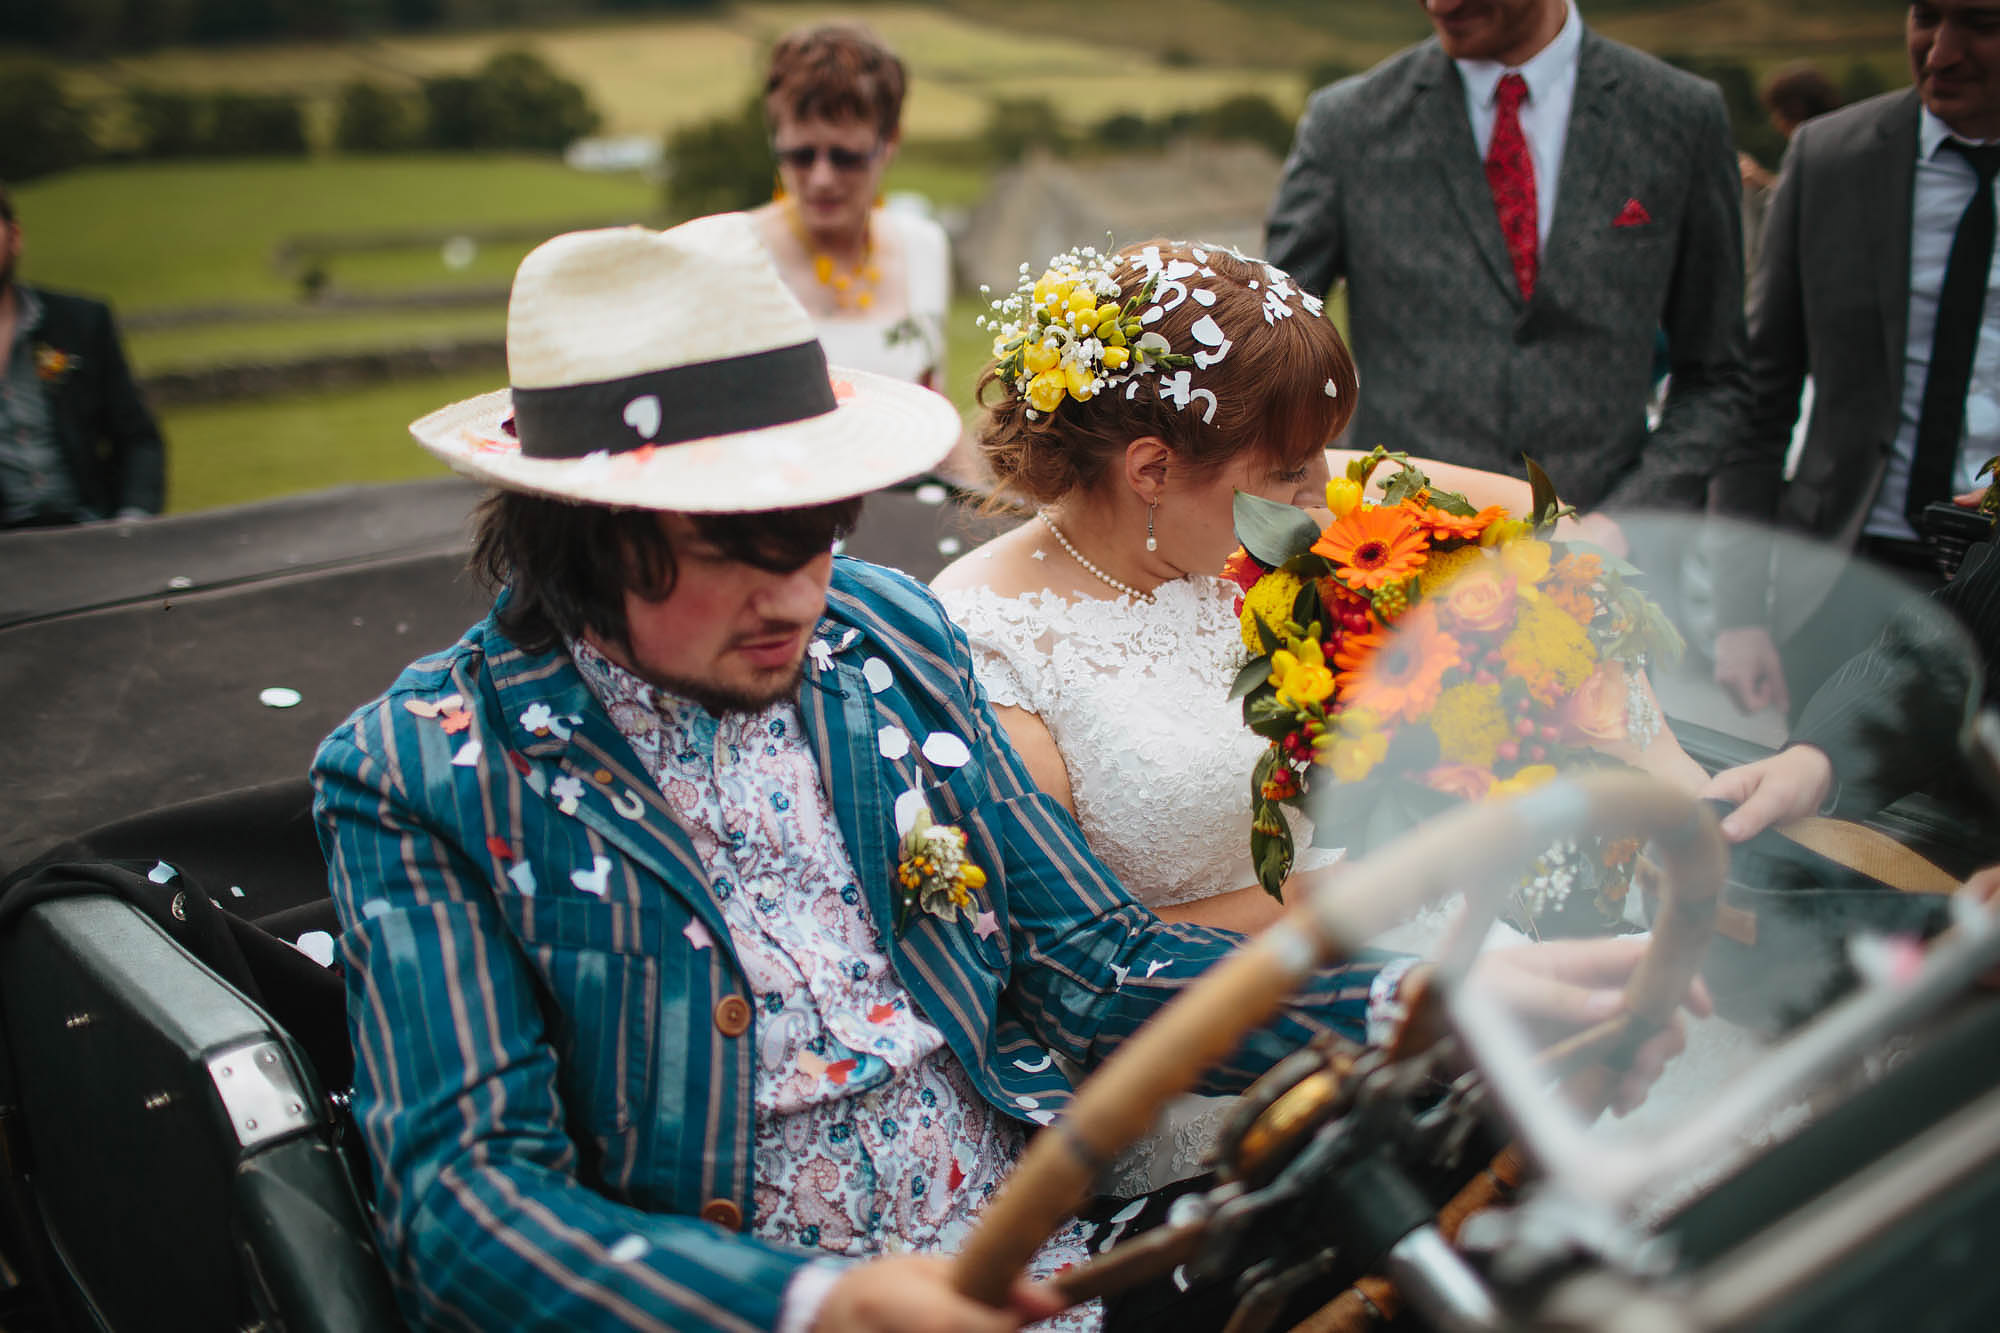 Groom wedding portrait in a vintage car in Yorkshire Dales